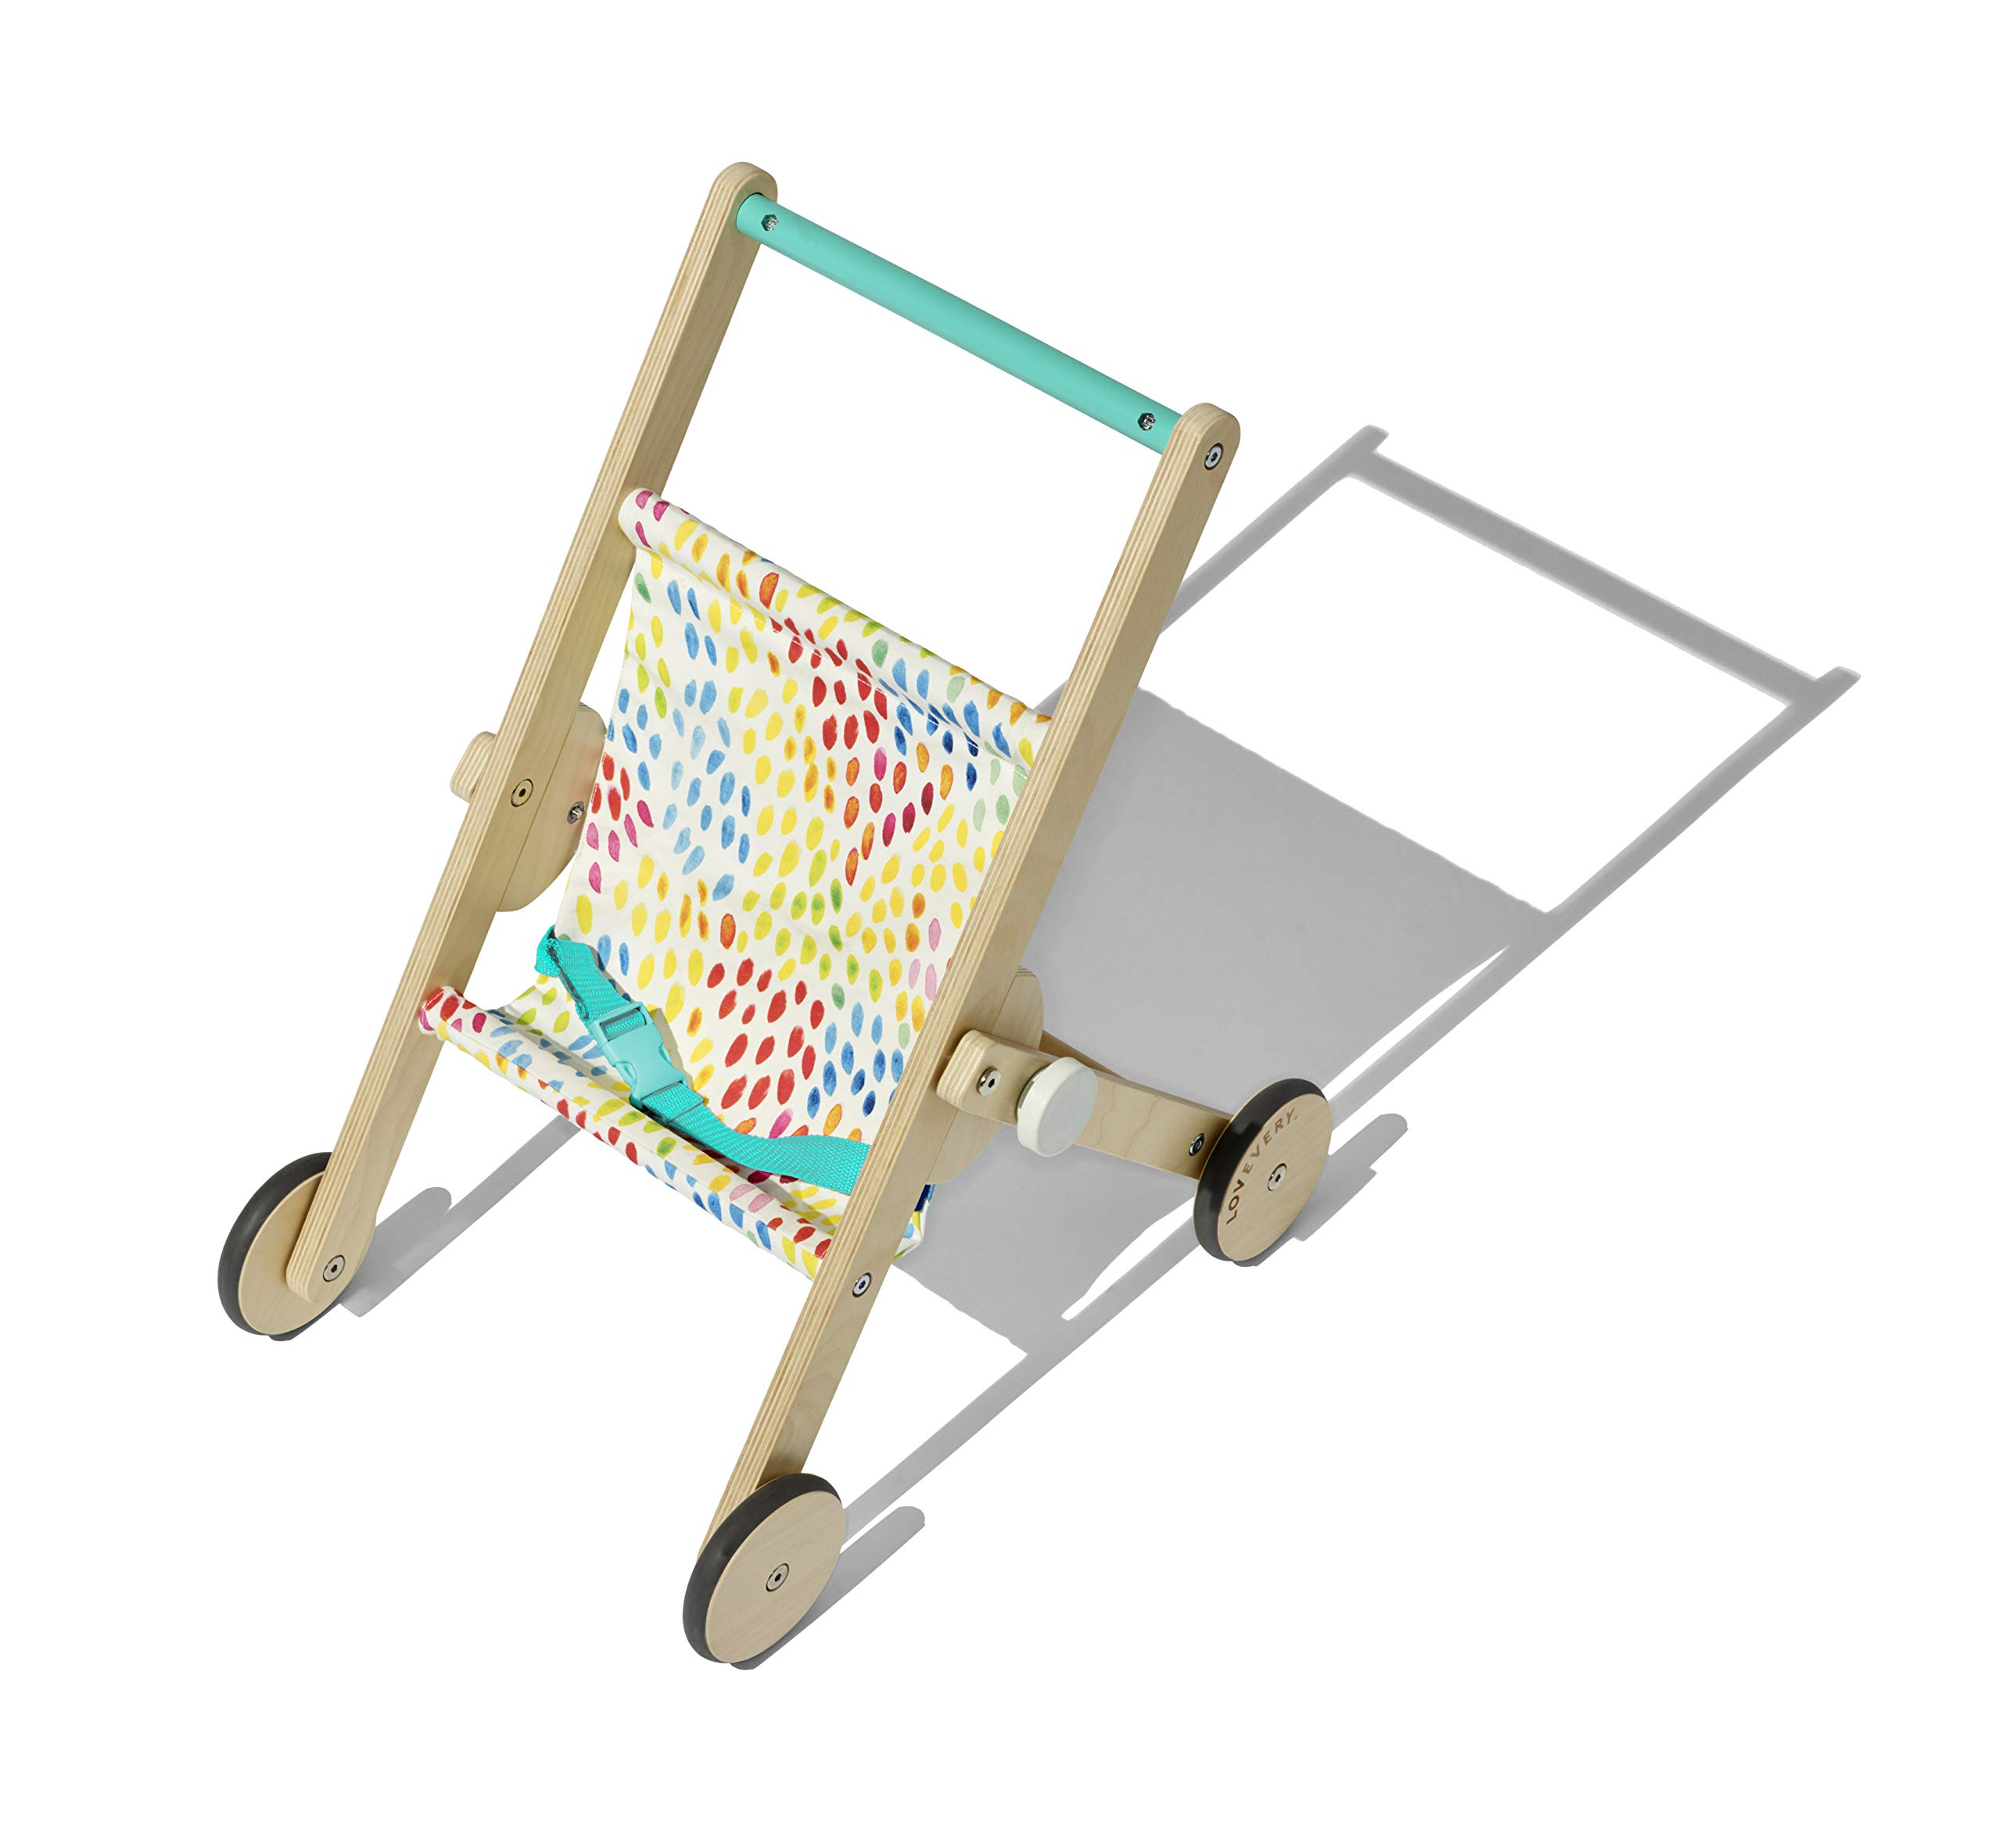 The Buddy Stroller by Lovevery - Wooden Toy Doll Stroller for Pretend Play